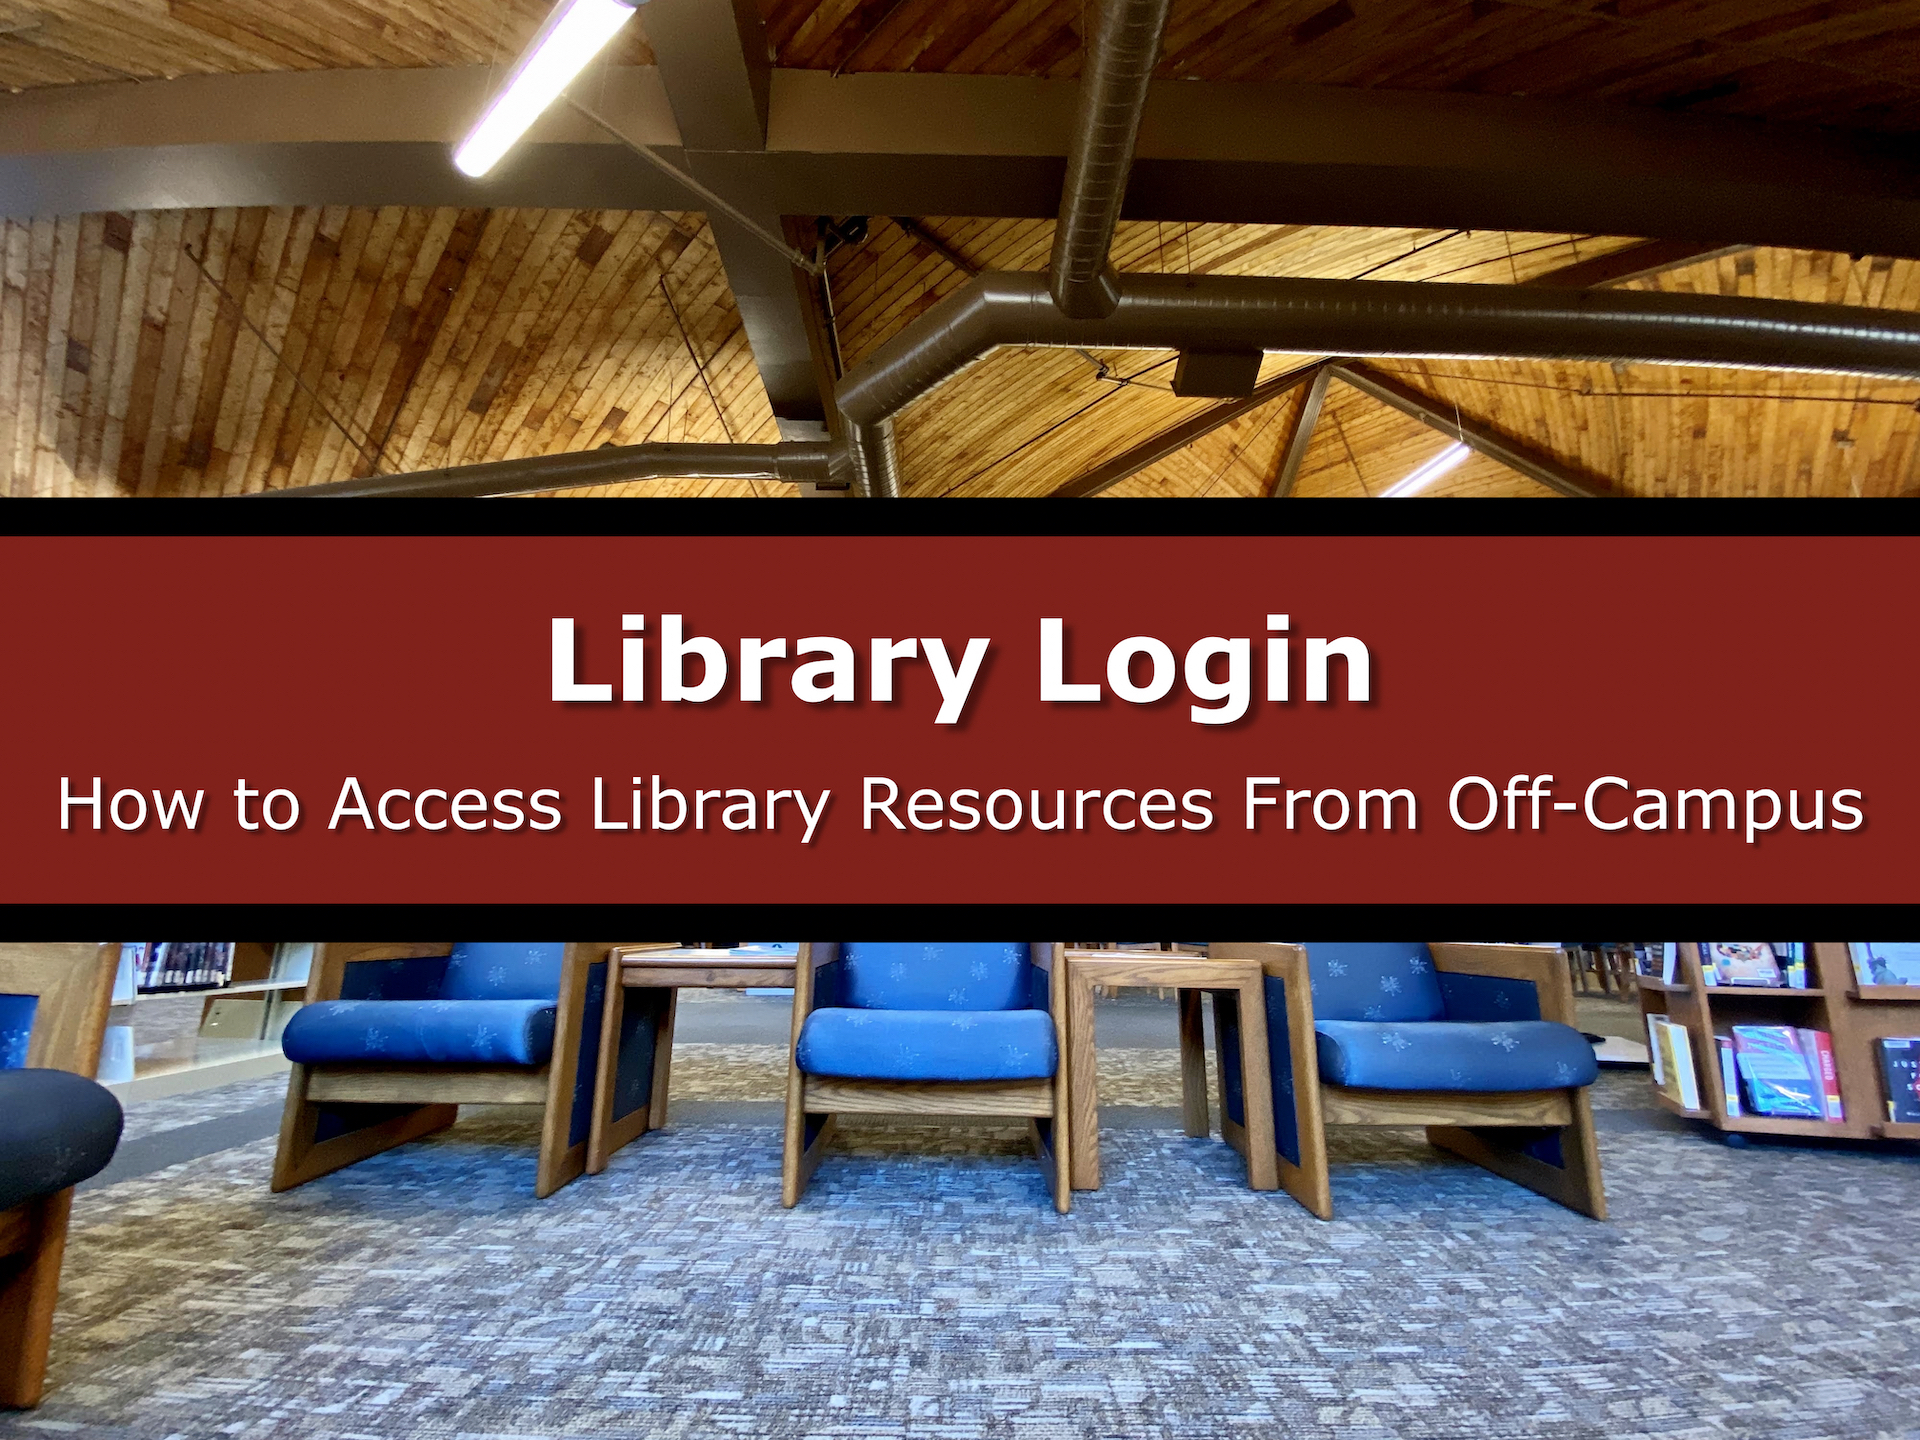 "Image Button of Bedford Library Serials Lounge with text: ""Library Login: How to Access Library Resources from Off-Campus"